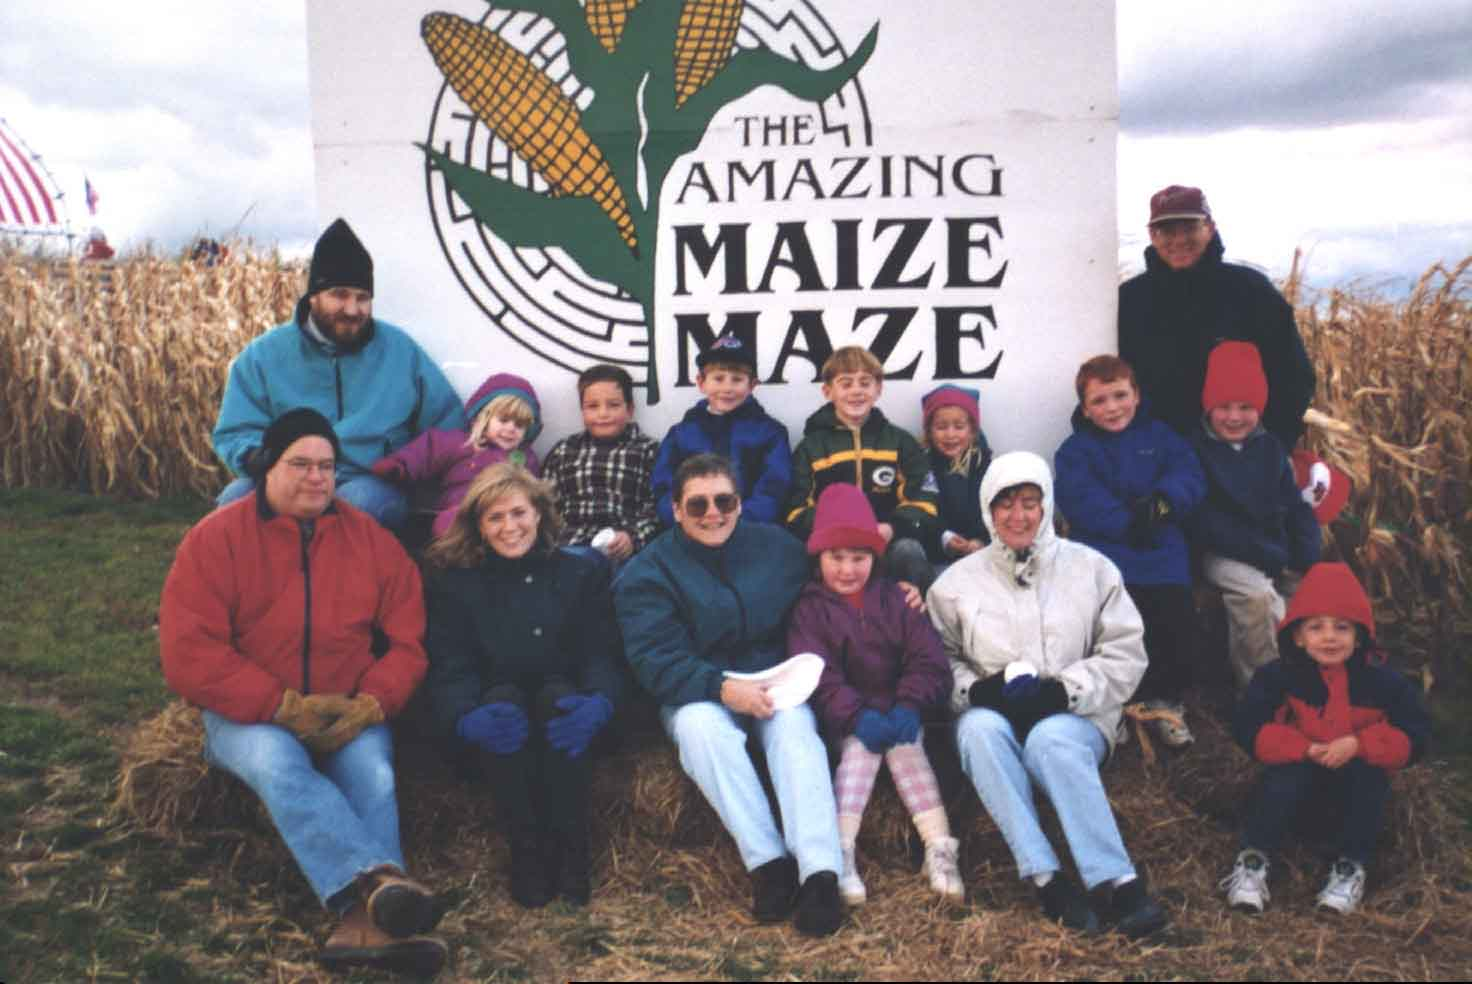 At the Maize Maze